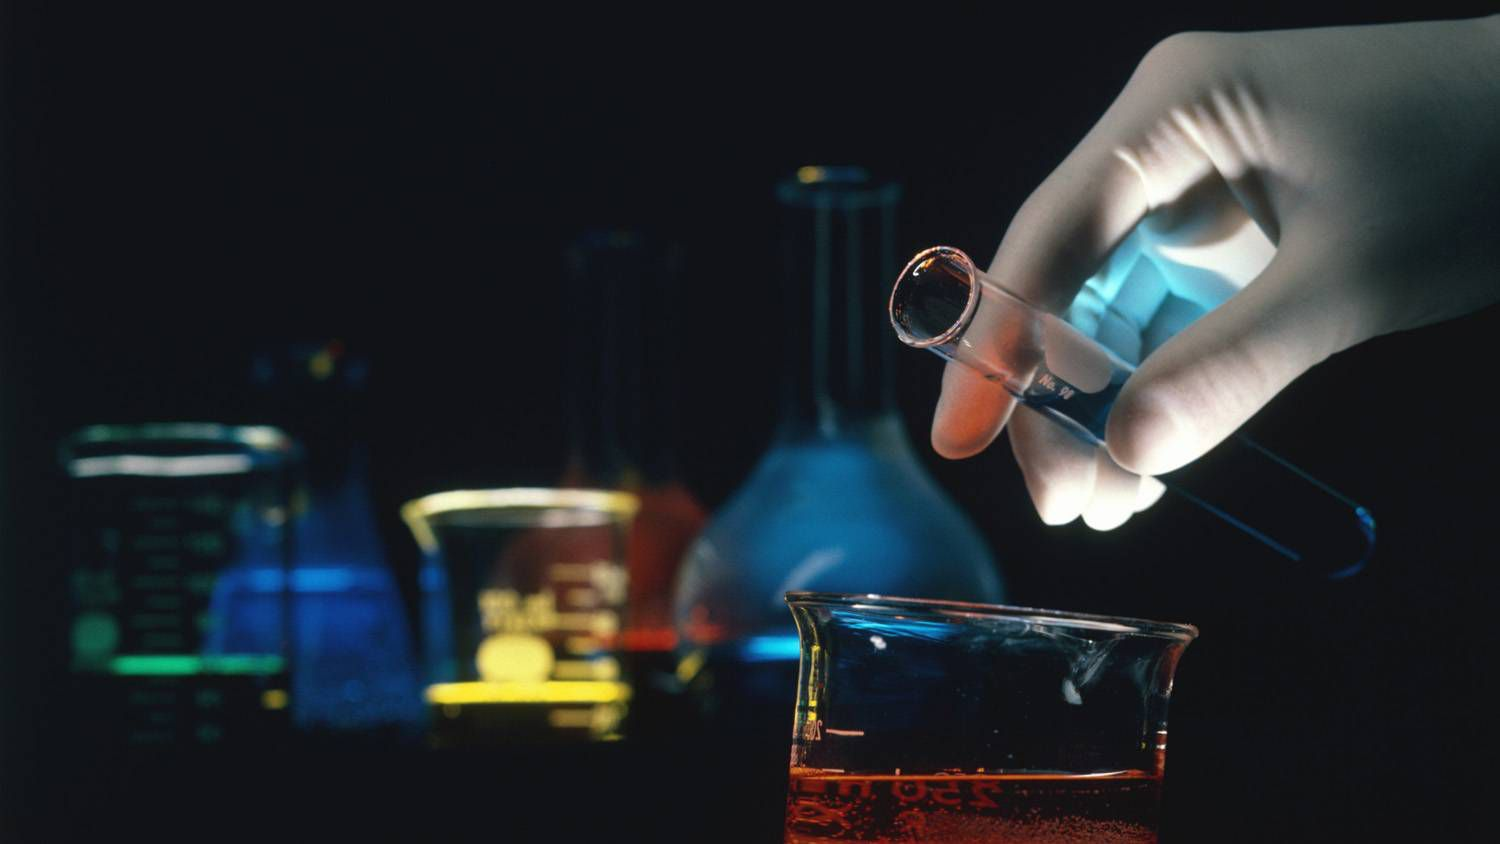 Positive insider chemistry at Chemtrade Logistics - The